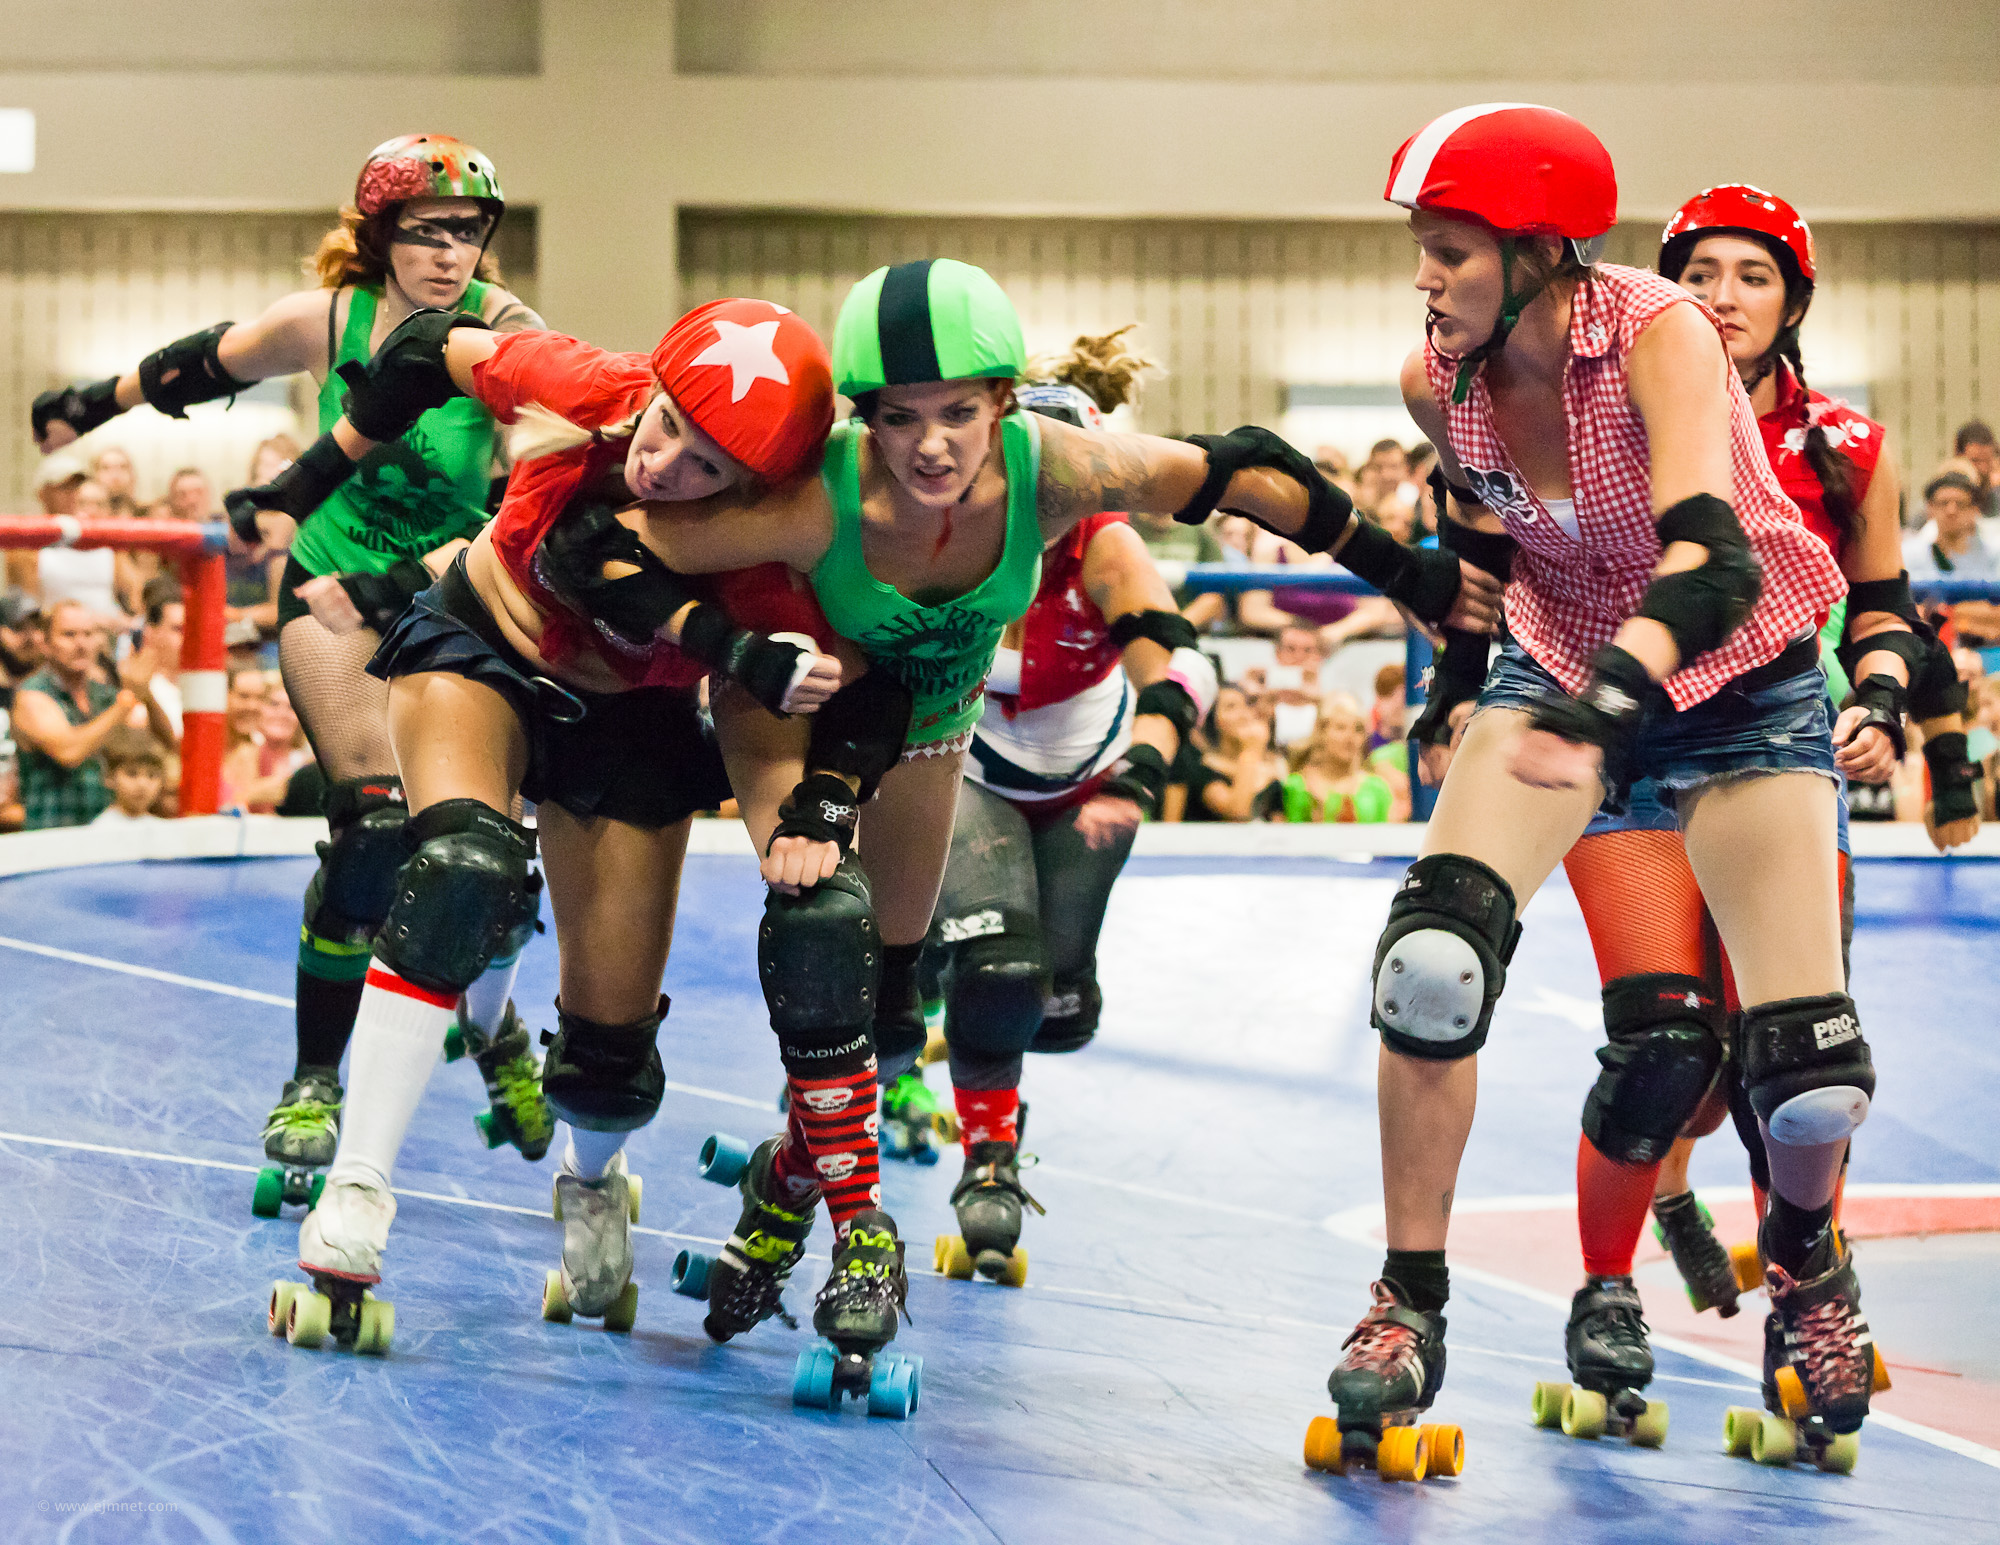 http://upload.wikimedia.org/wikipedia/commons/2/2a/Texas_Roller_Derby_Lonestar_Rollergirls.jpg